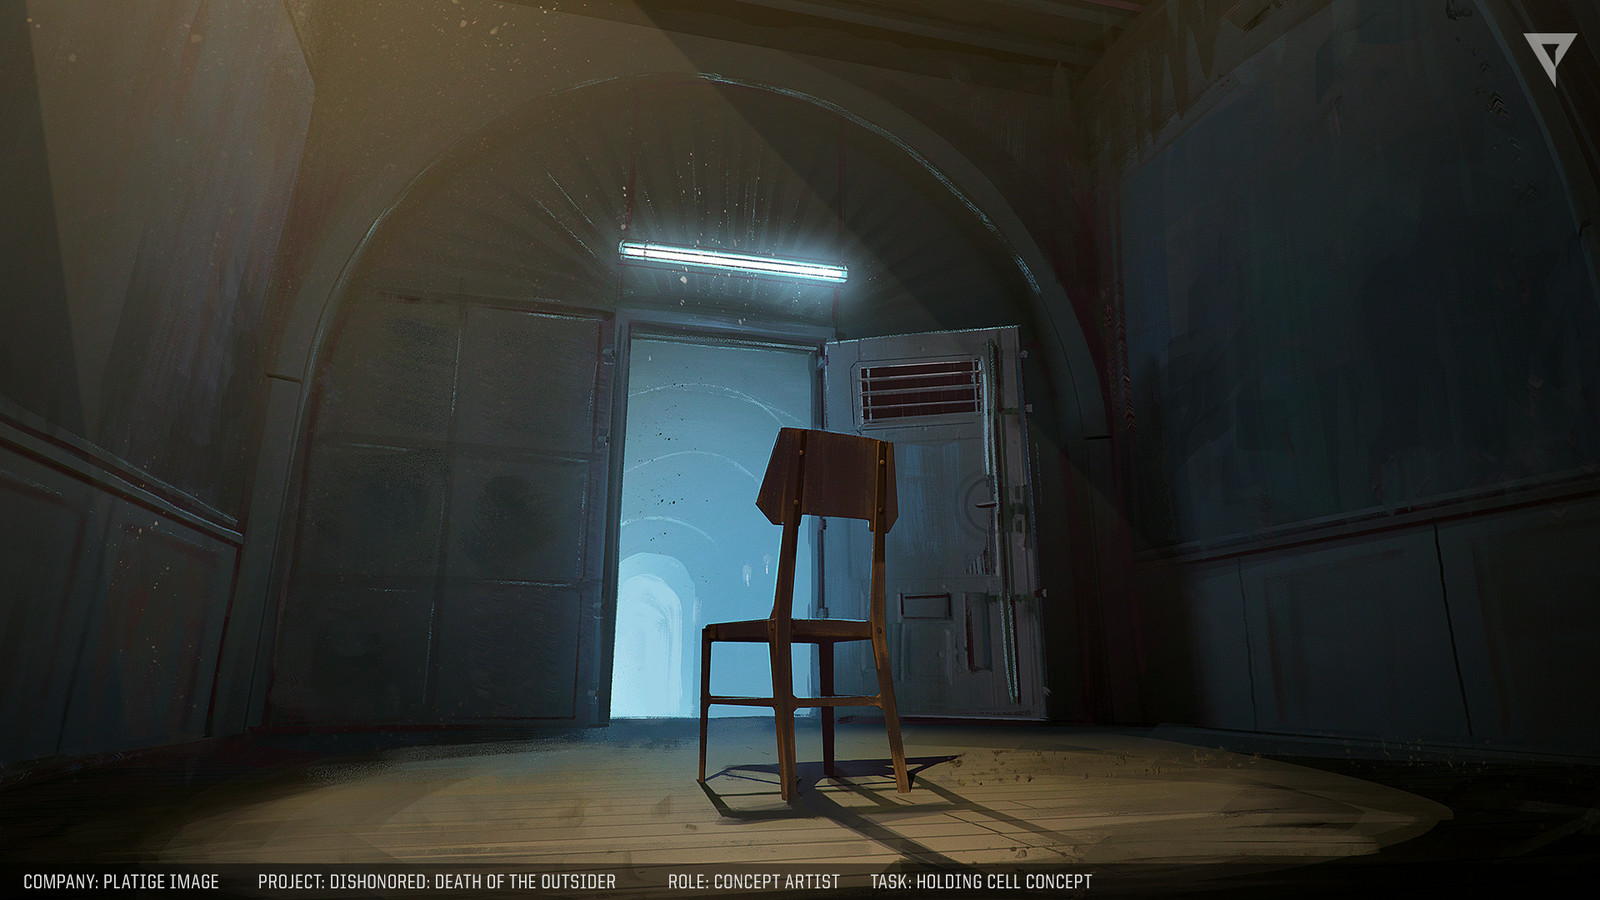 Concept for a holding cell.